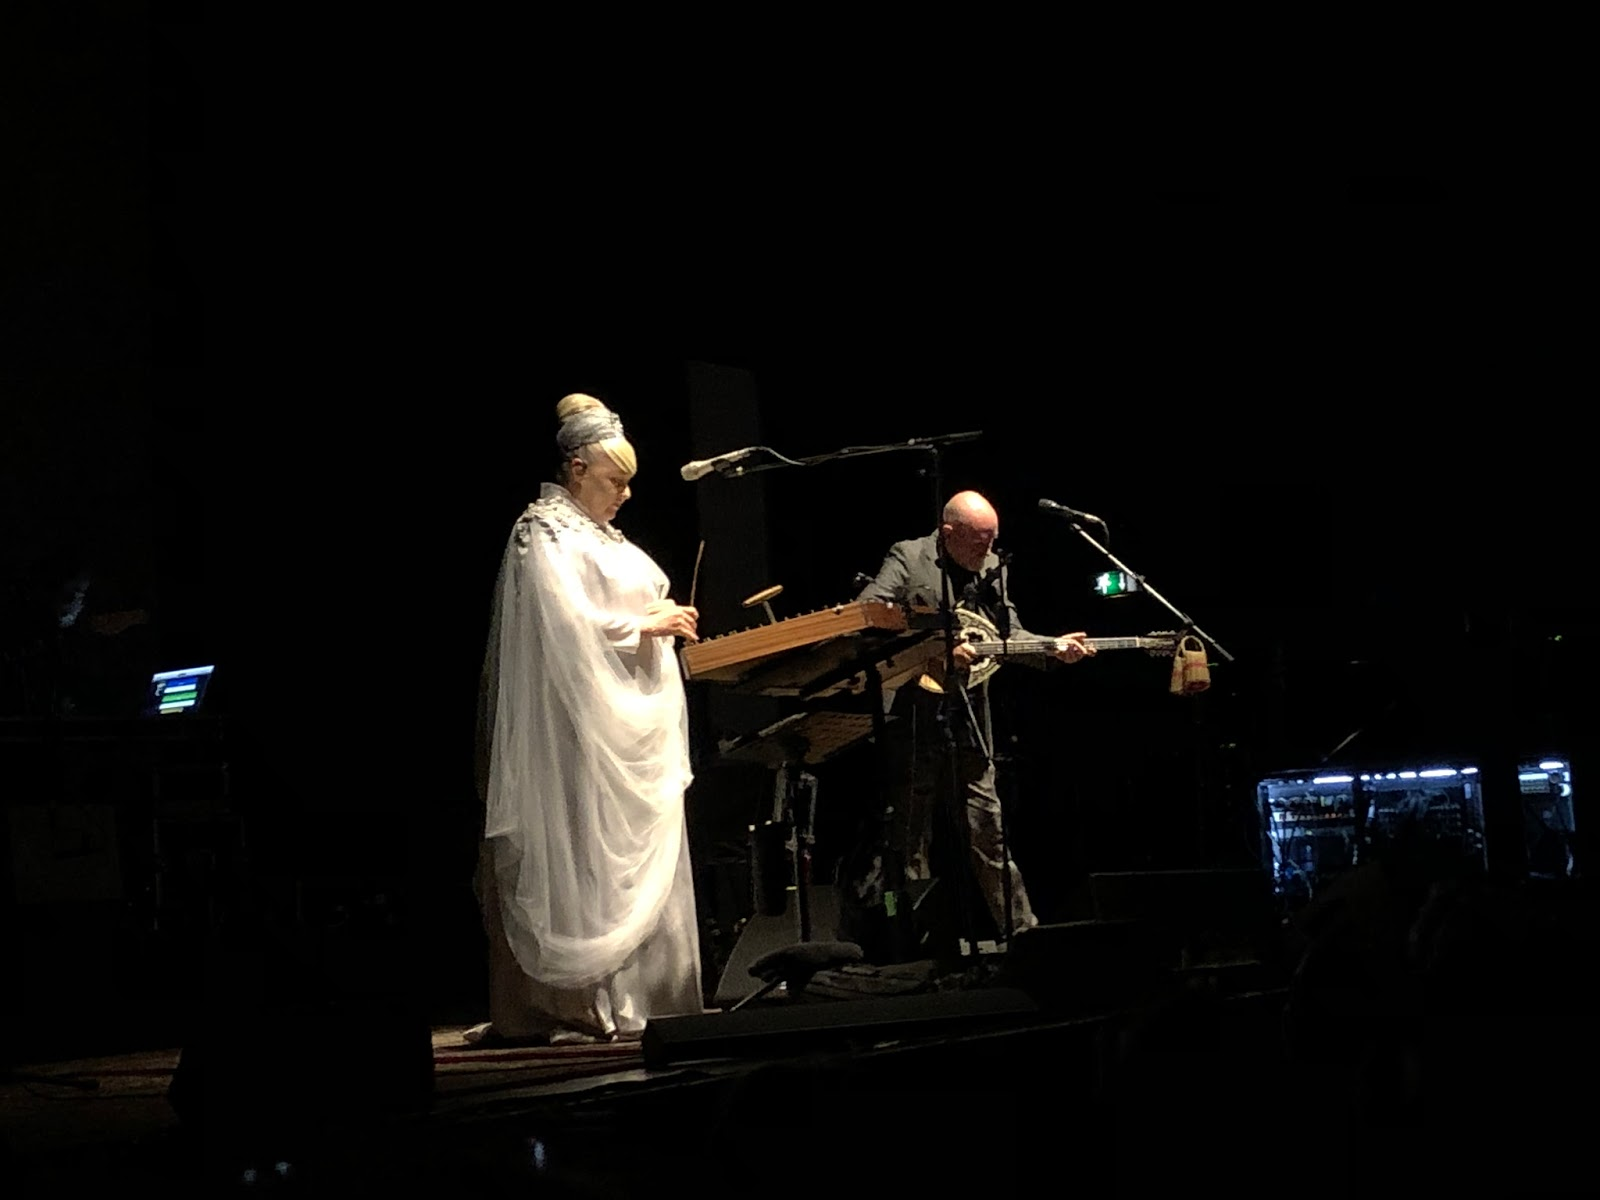 Dead Can Dance at the Hammersmith Apollo | 4 May 2019